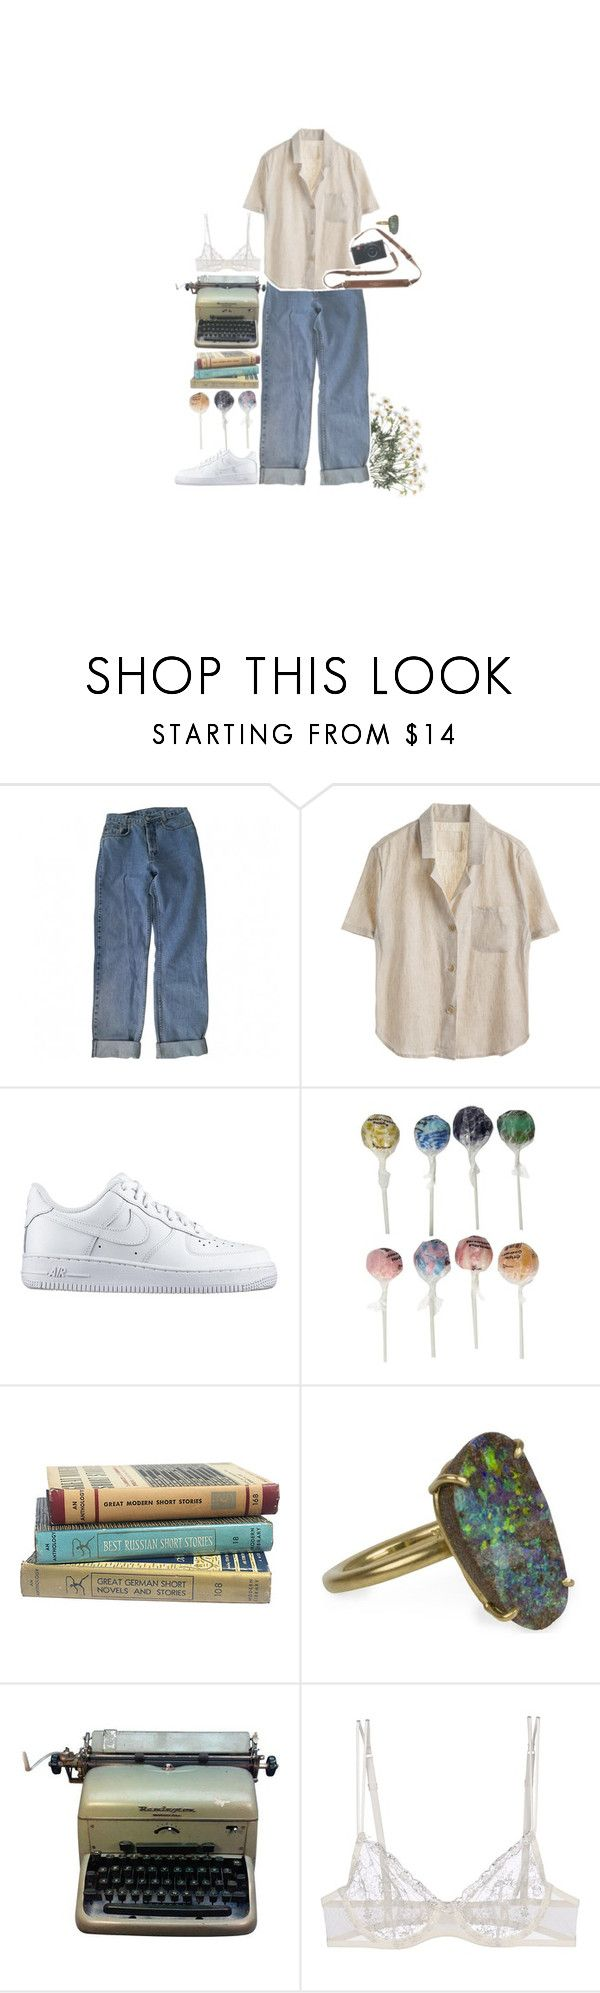 """And I'm crying for yesterday"" by fangirl-tm ❤ liked on Polyvore featuring Levi's, NIKE, Original Gourmet Food Company, Irene Neuwirth, Remington and La Perla"